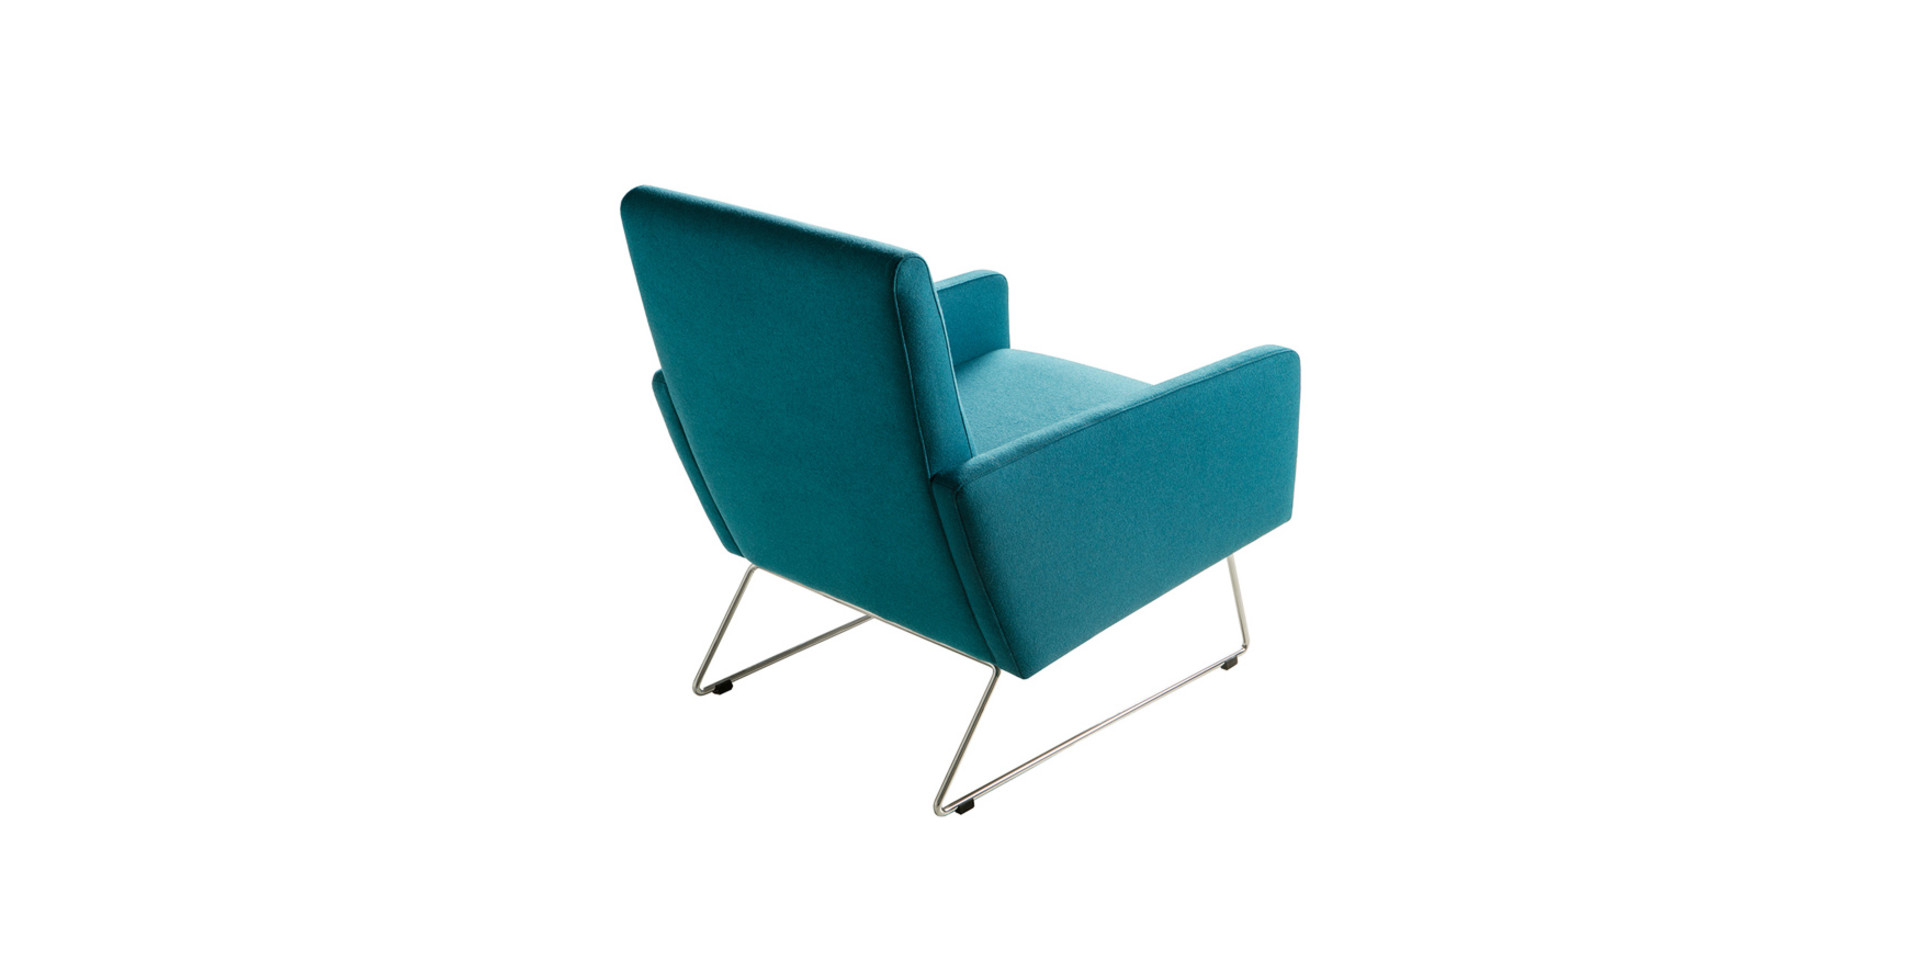 sits-max-fauteuil-buttons_panno2240_turquoise_4